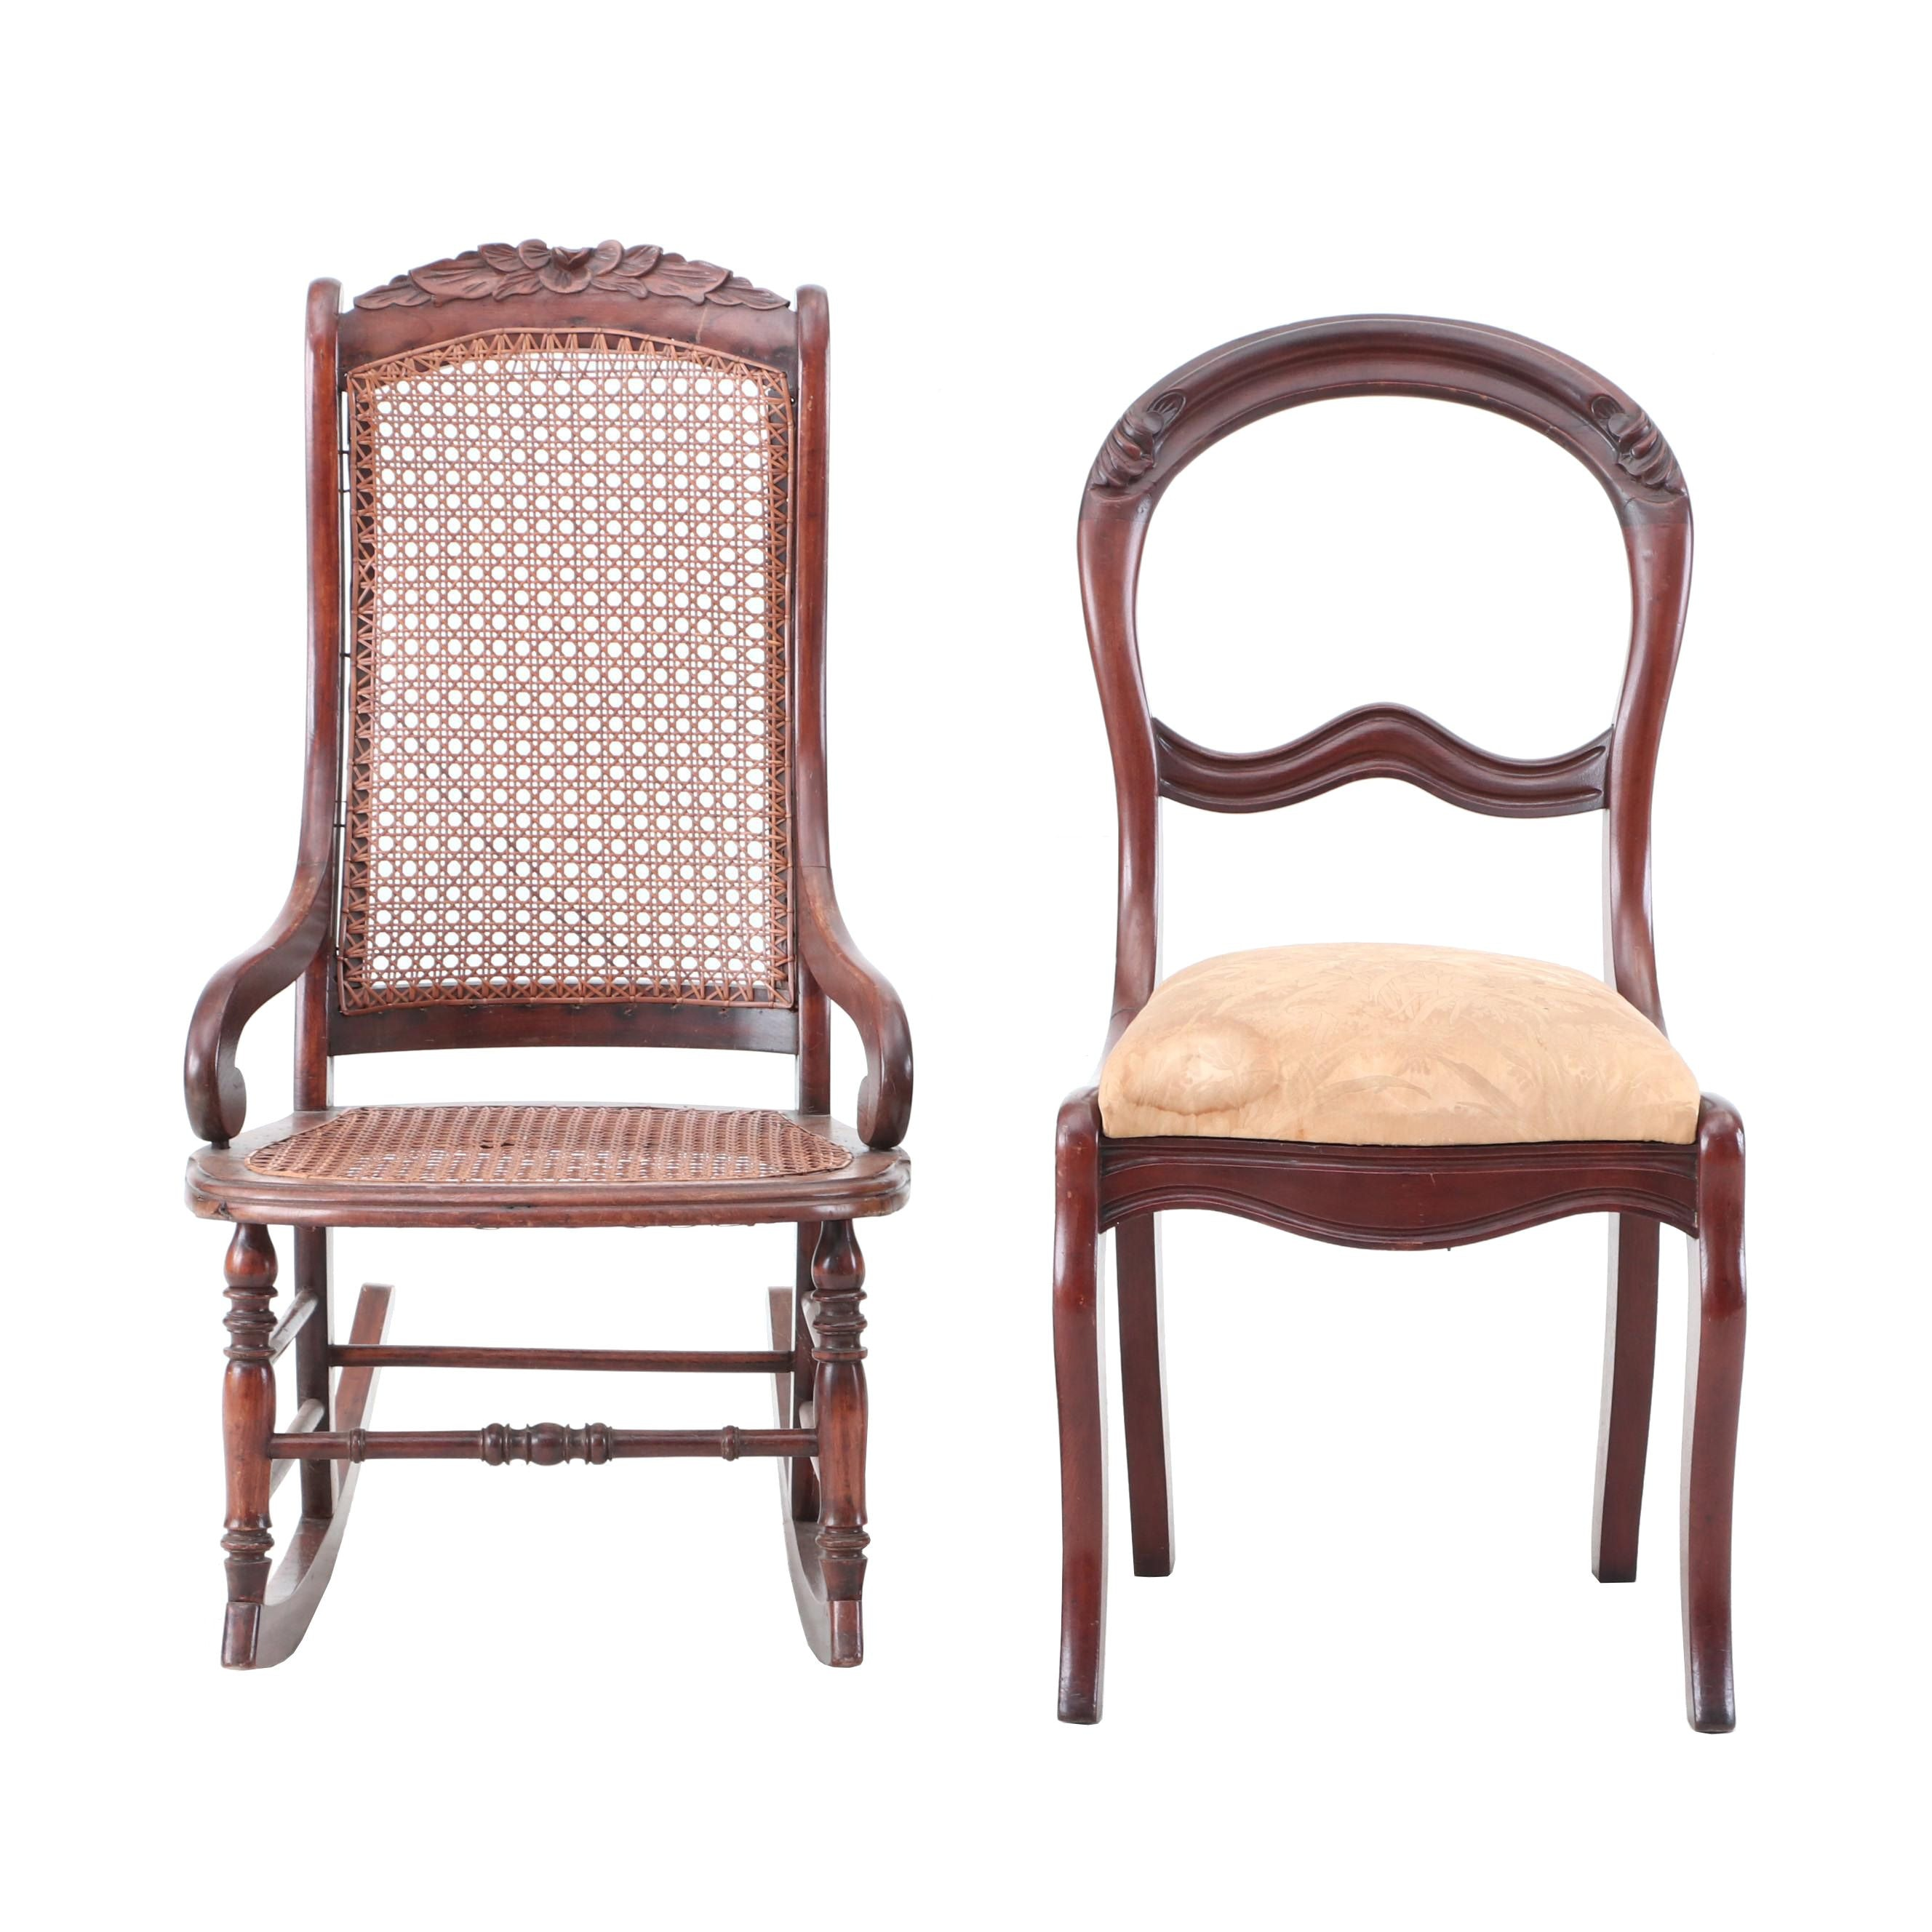 Victorian Walnut Rocking Chair and Balloon-Back Chair